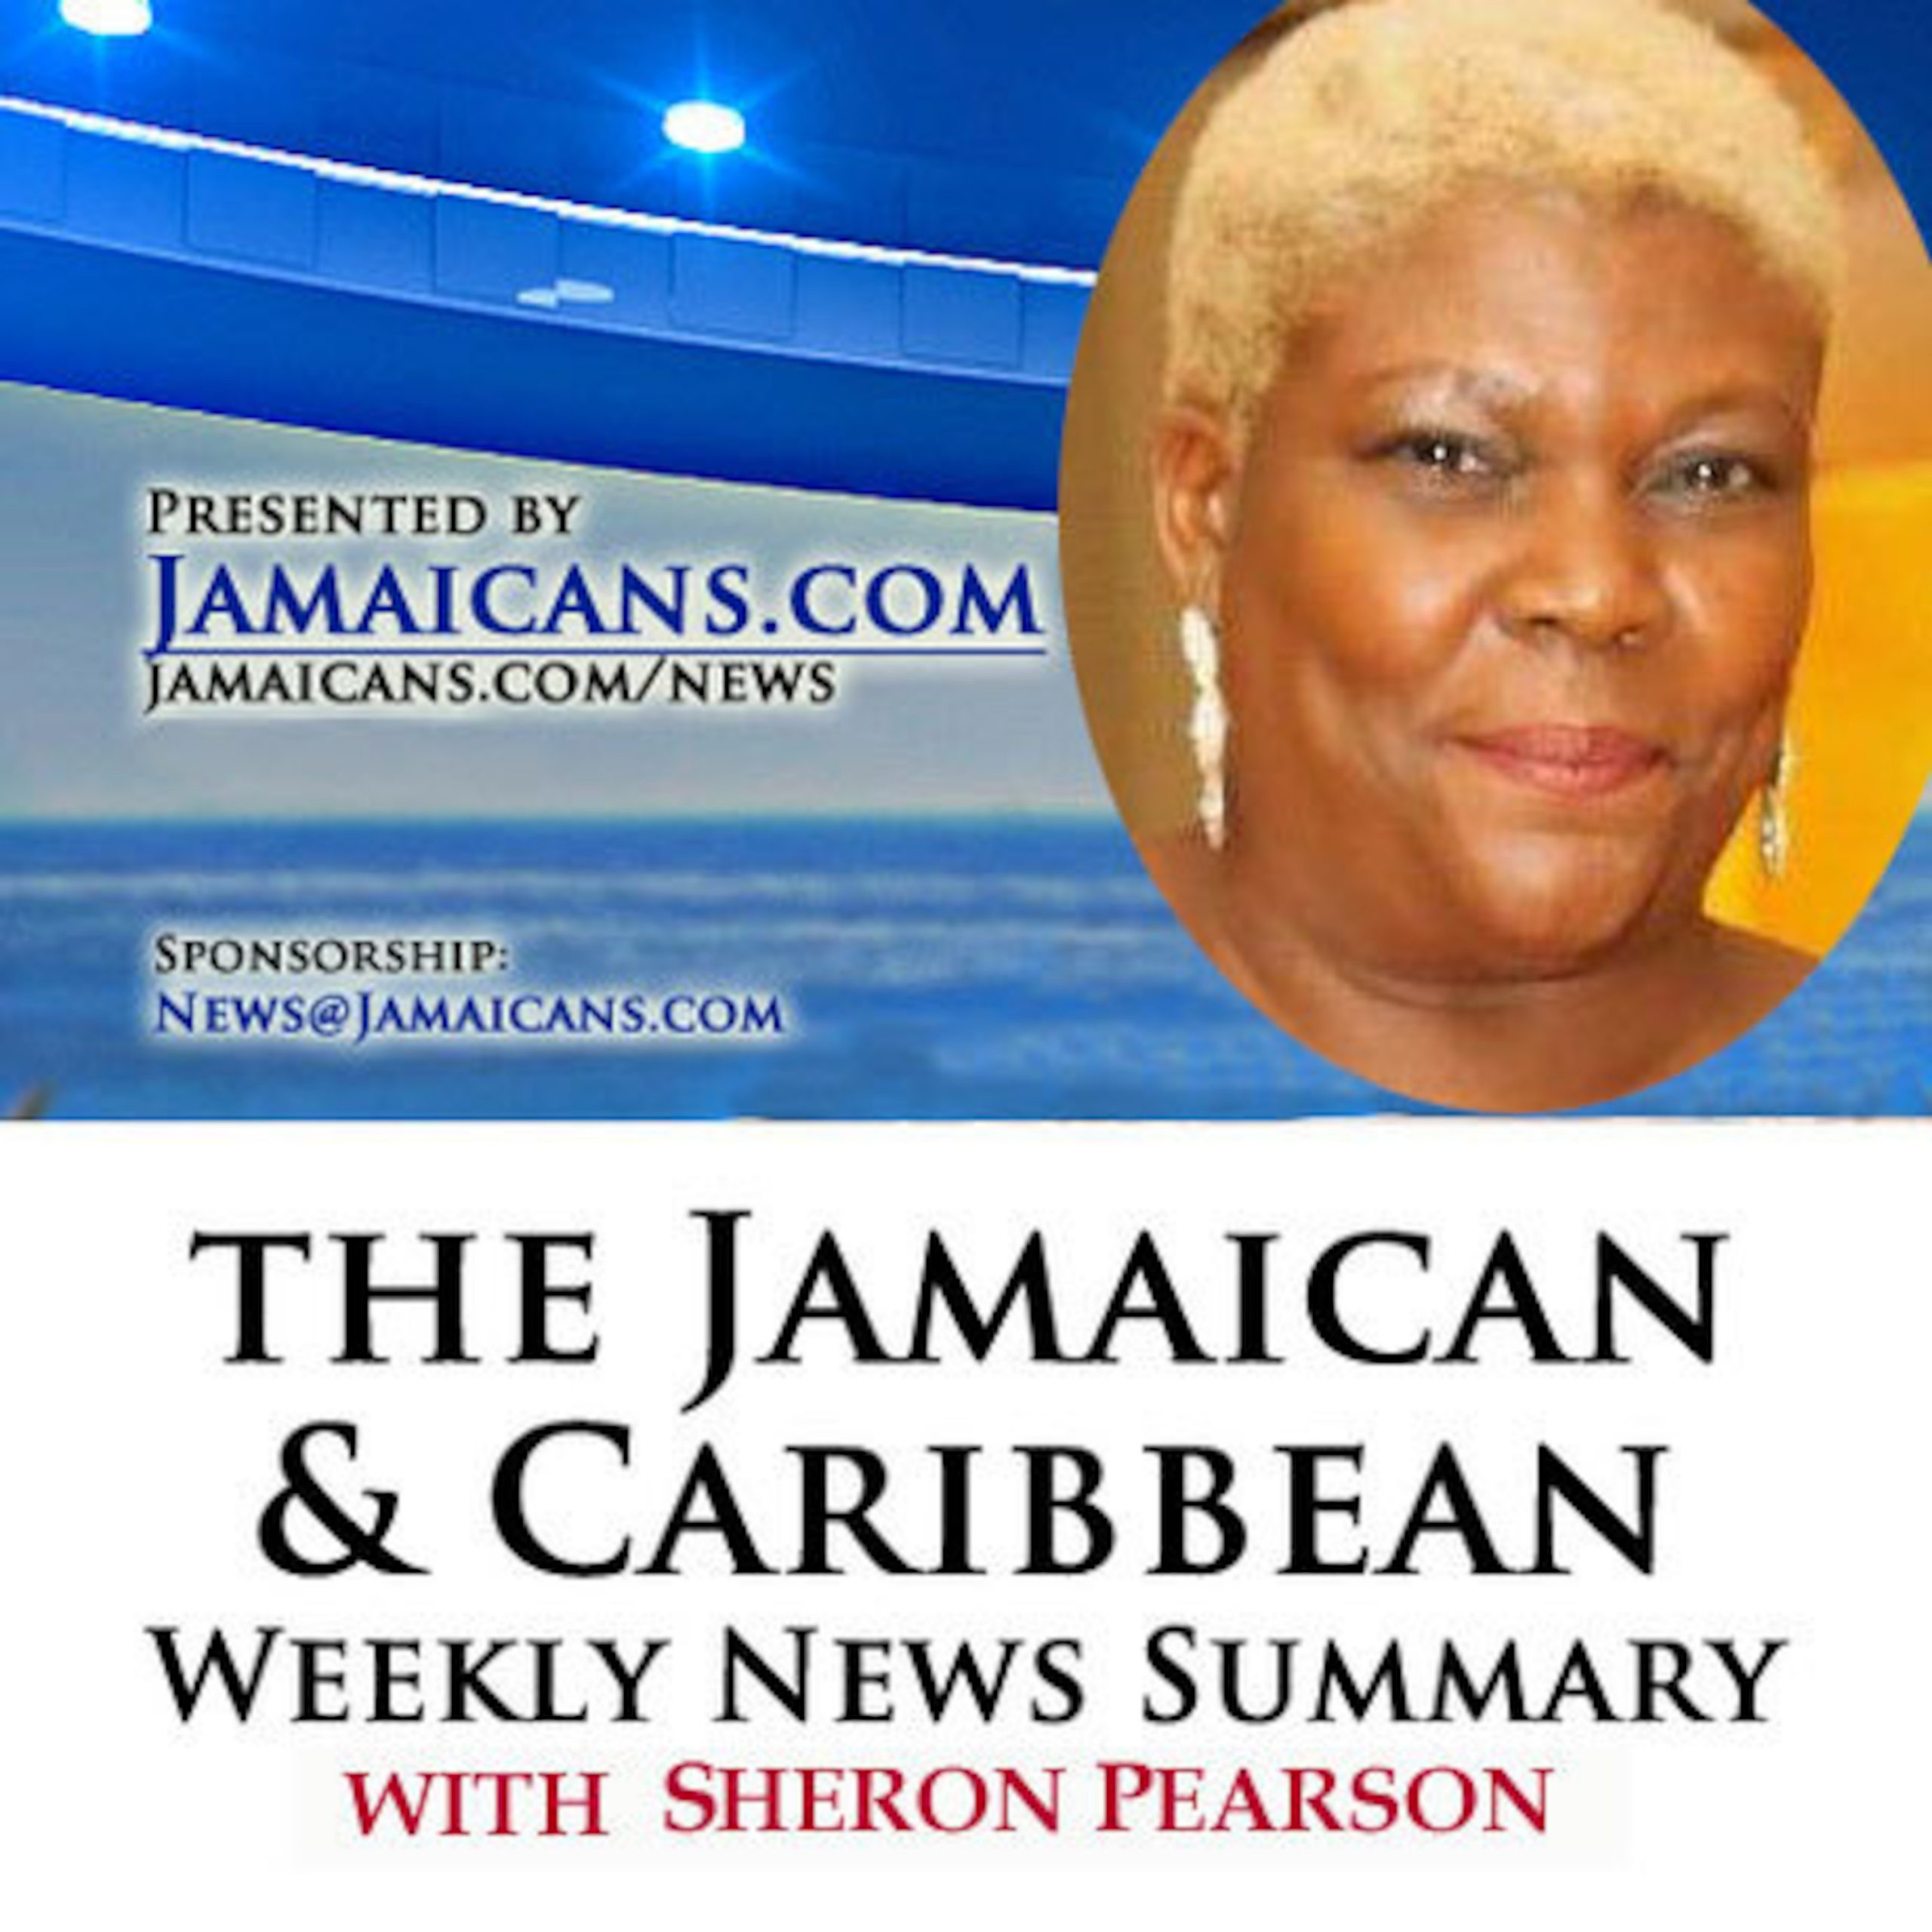 Listen to the Podcast of The Jamaica & Caribbean Weekly News Summary for the week ending October 4, 2019